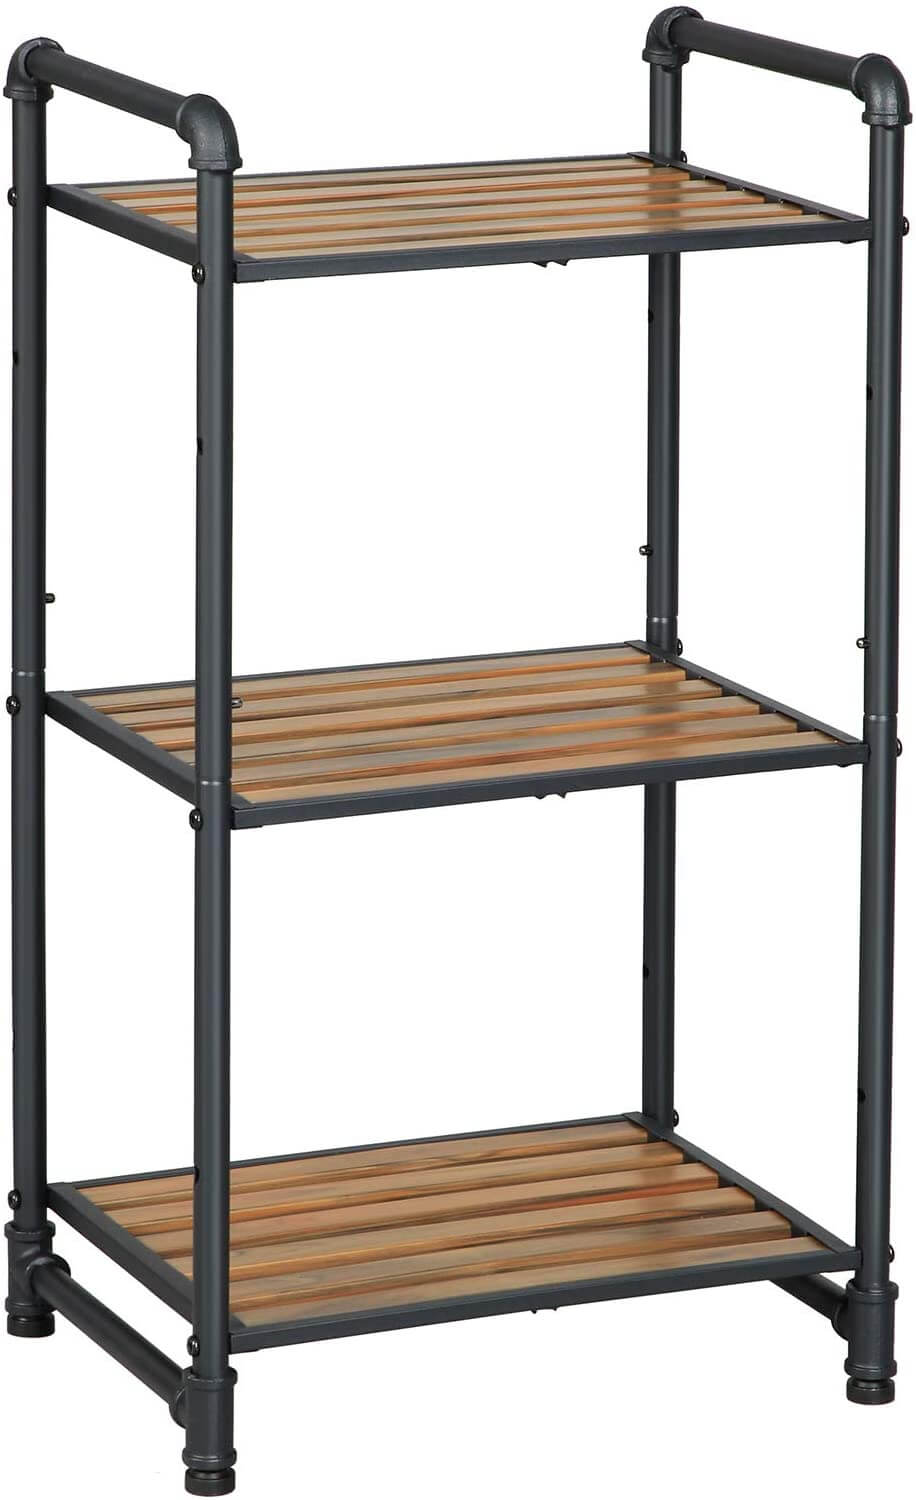 Enjoy fast, free nationwide shipping!  Family owned and operated, HawkinsWoodshop.com is your one stop shop for affordable furniture.  Shop HawkinsWoodshop.com for solid wood & metal modern, traditional, contemporary, industrial, custom, rustic, and farmhouse furniture including our 3-Tier Slatted Board Metal Pipe Storage Rack.